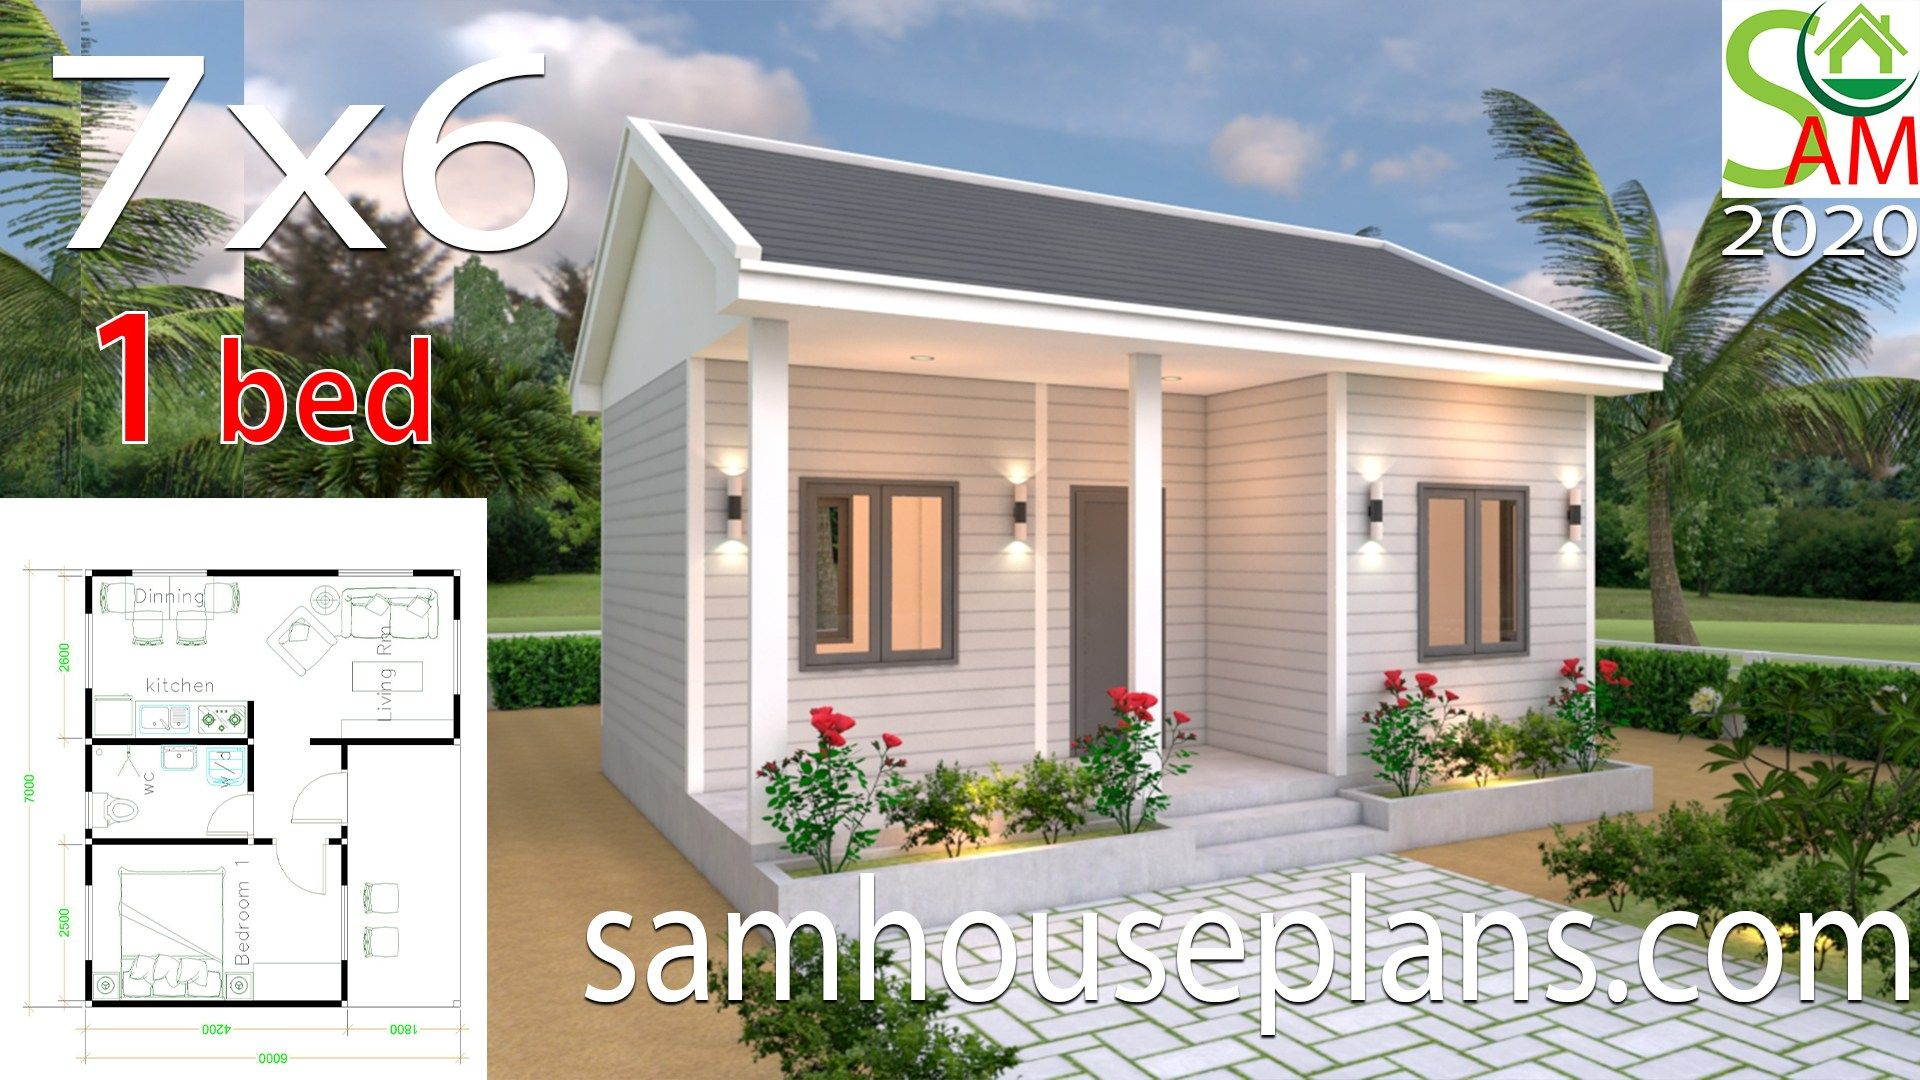 House Plans 7x6 With One Bedroom Gable Roof Houseplanidea House Plans House Plans Mansion House Plan Gallery